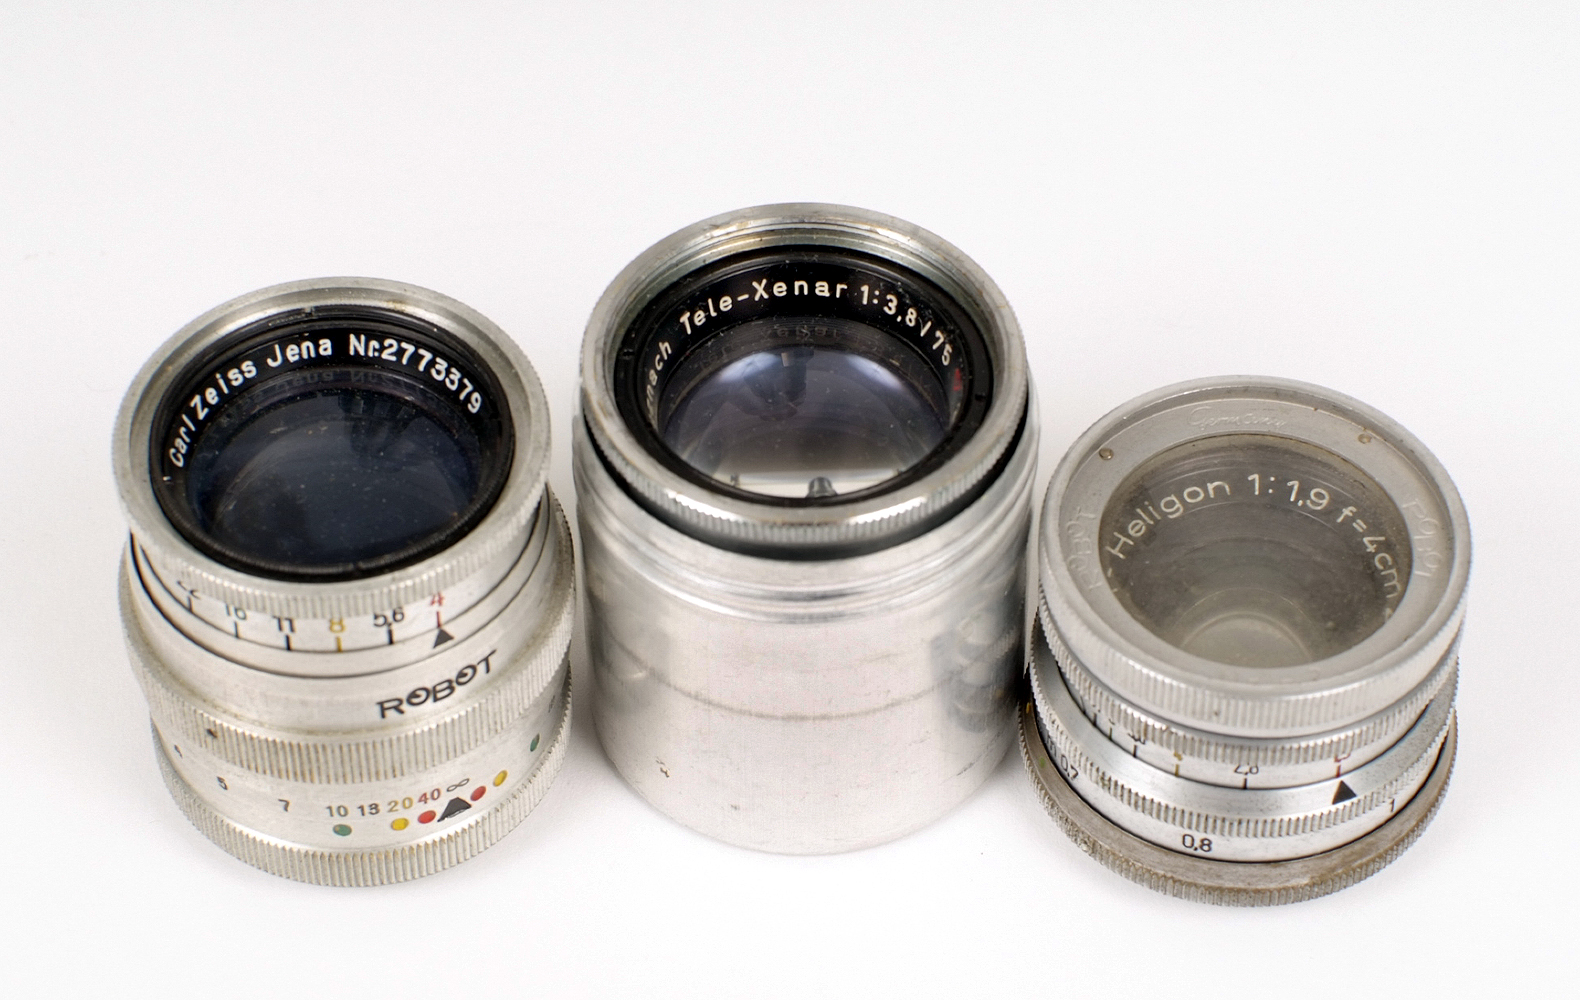 Lot 17 - A Collection of Robot Cameras Lenses. To include Tele-Aenar 75mm f3.8 lens, Sonnar 7.